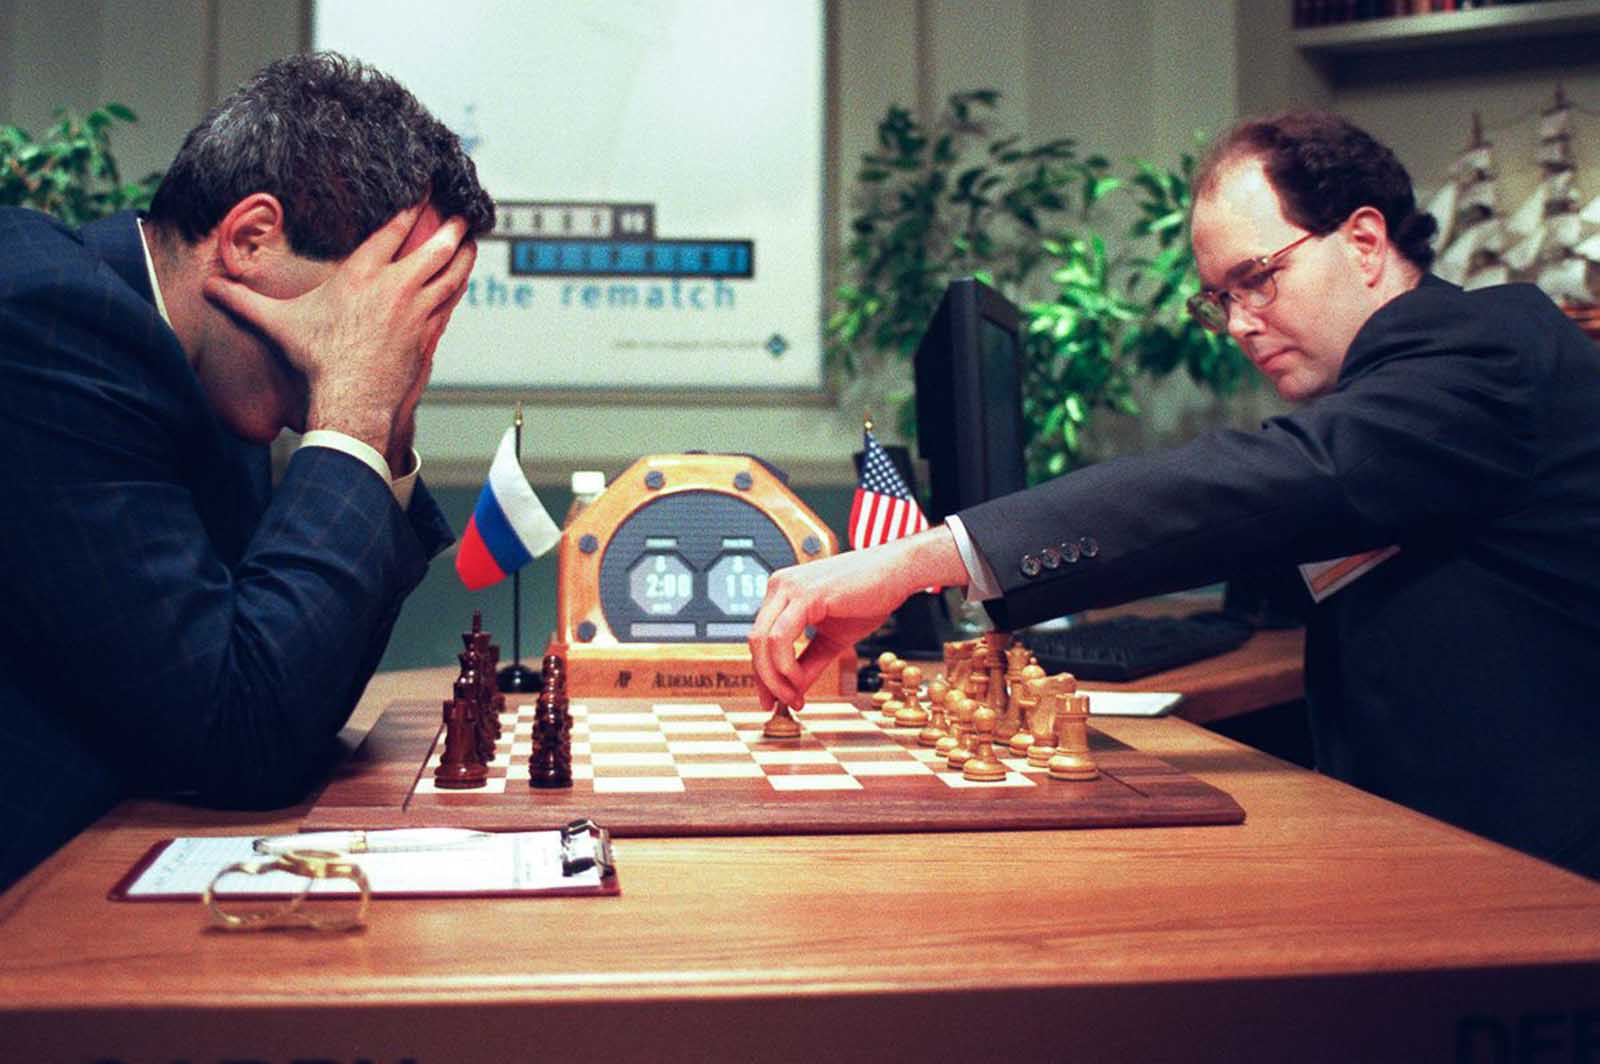 Kasparov holds his head in his hands as IBM scientist Joseph Hoane makes a move for Deep Blue at the start of the final game. May 11, 1997.